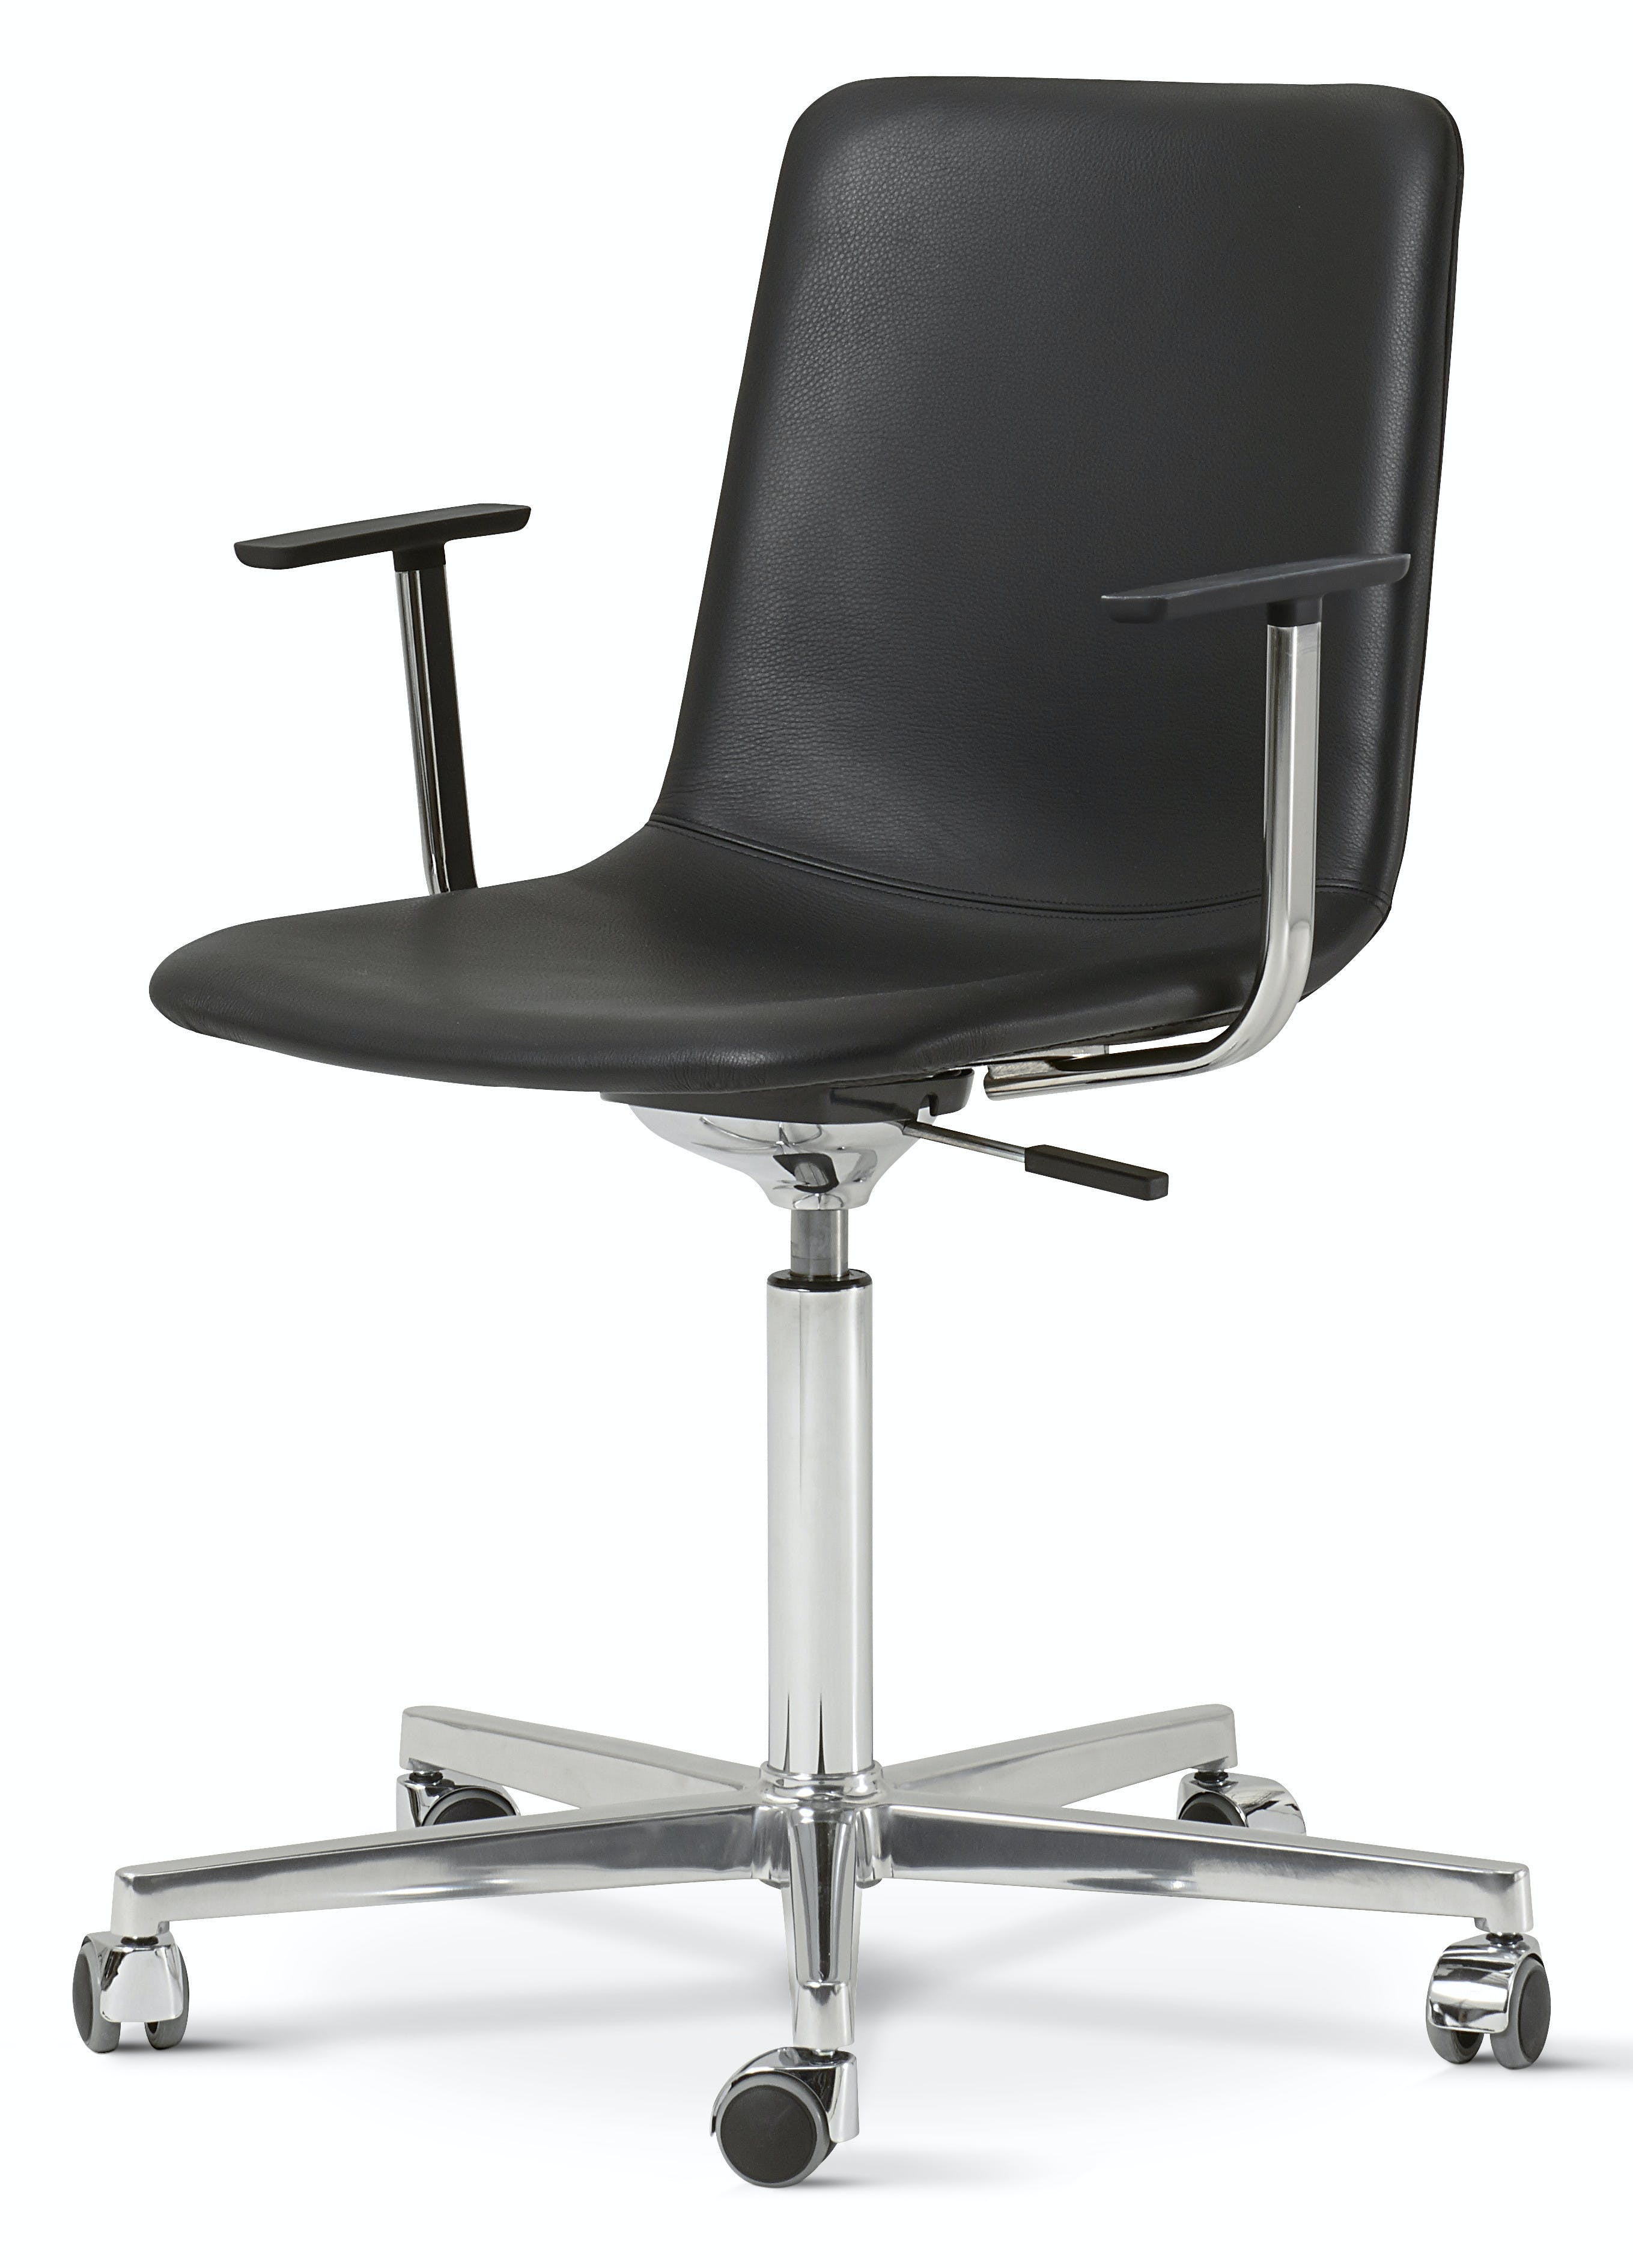 Fredericia Pato Executive Chair Office Black Chrome Haute Living